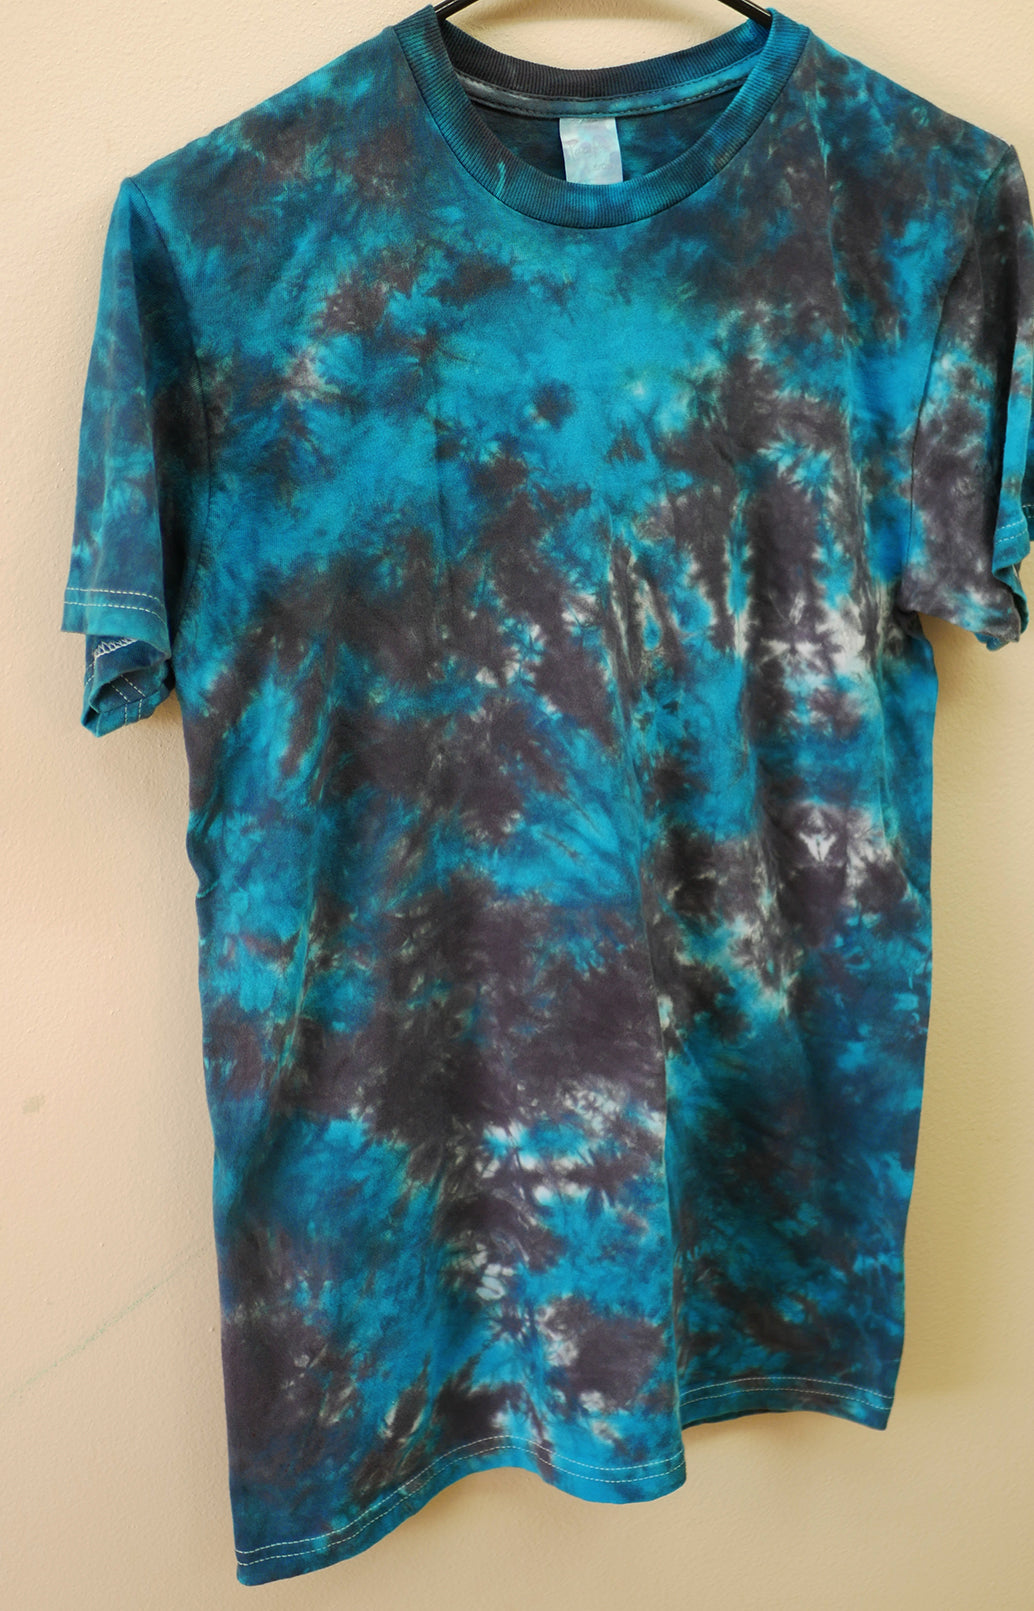 Blue & Black Abyss Tie-Dyed T